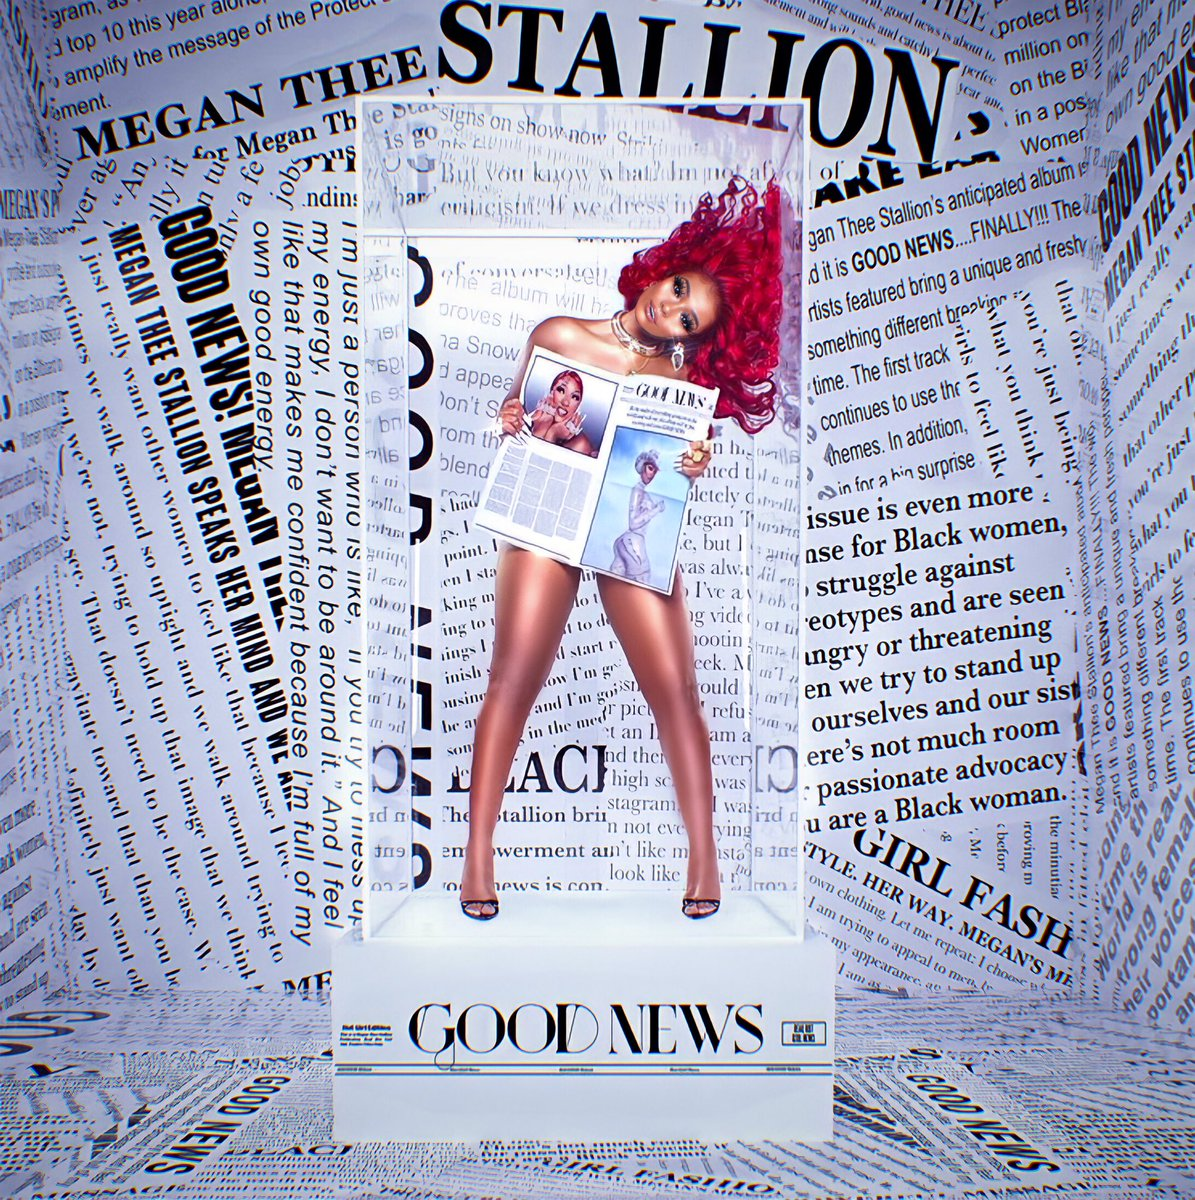 Good News #FanArt @theestallion #GoodNewsMegan 📰🔥🔥